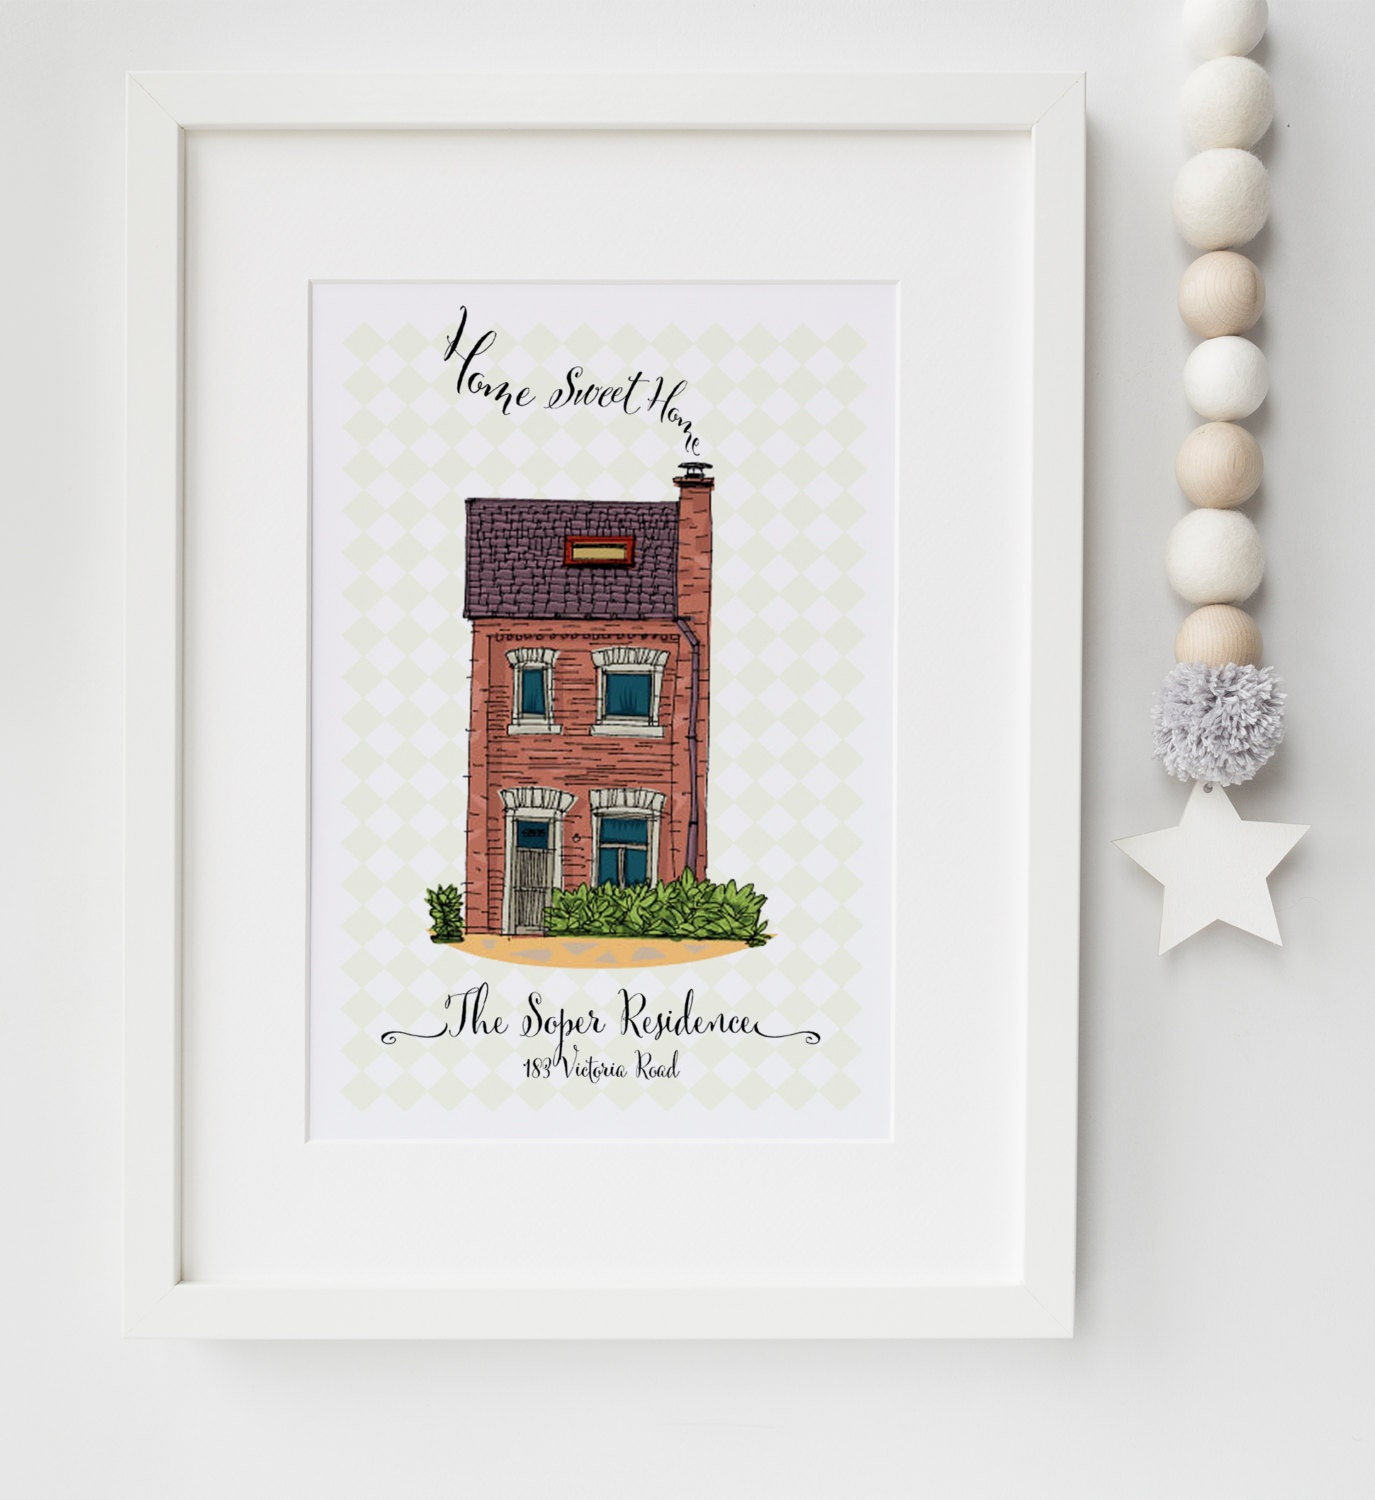 Moving Wall Art personalised new home/house warming picture print moving in gift